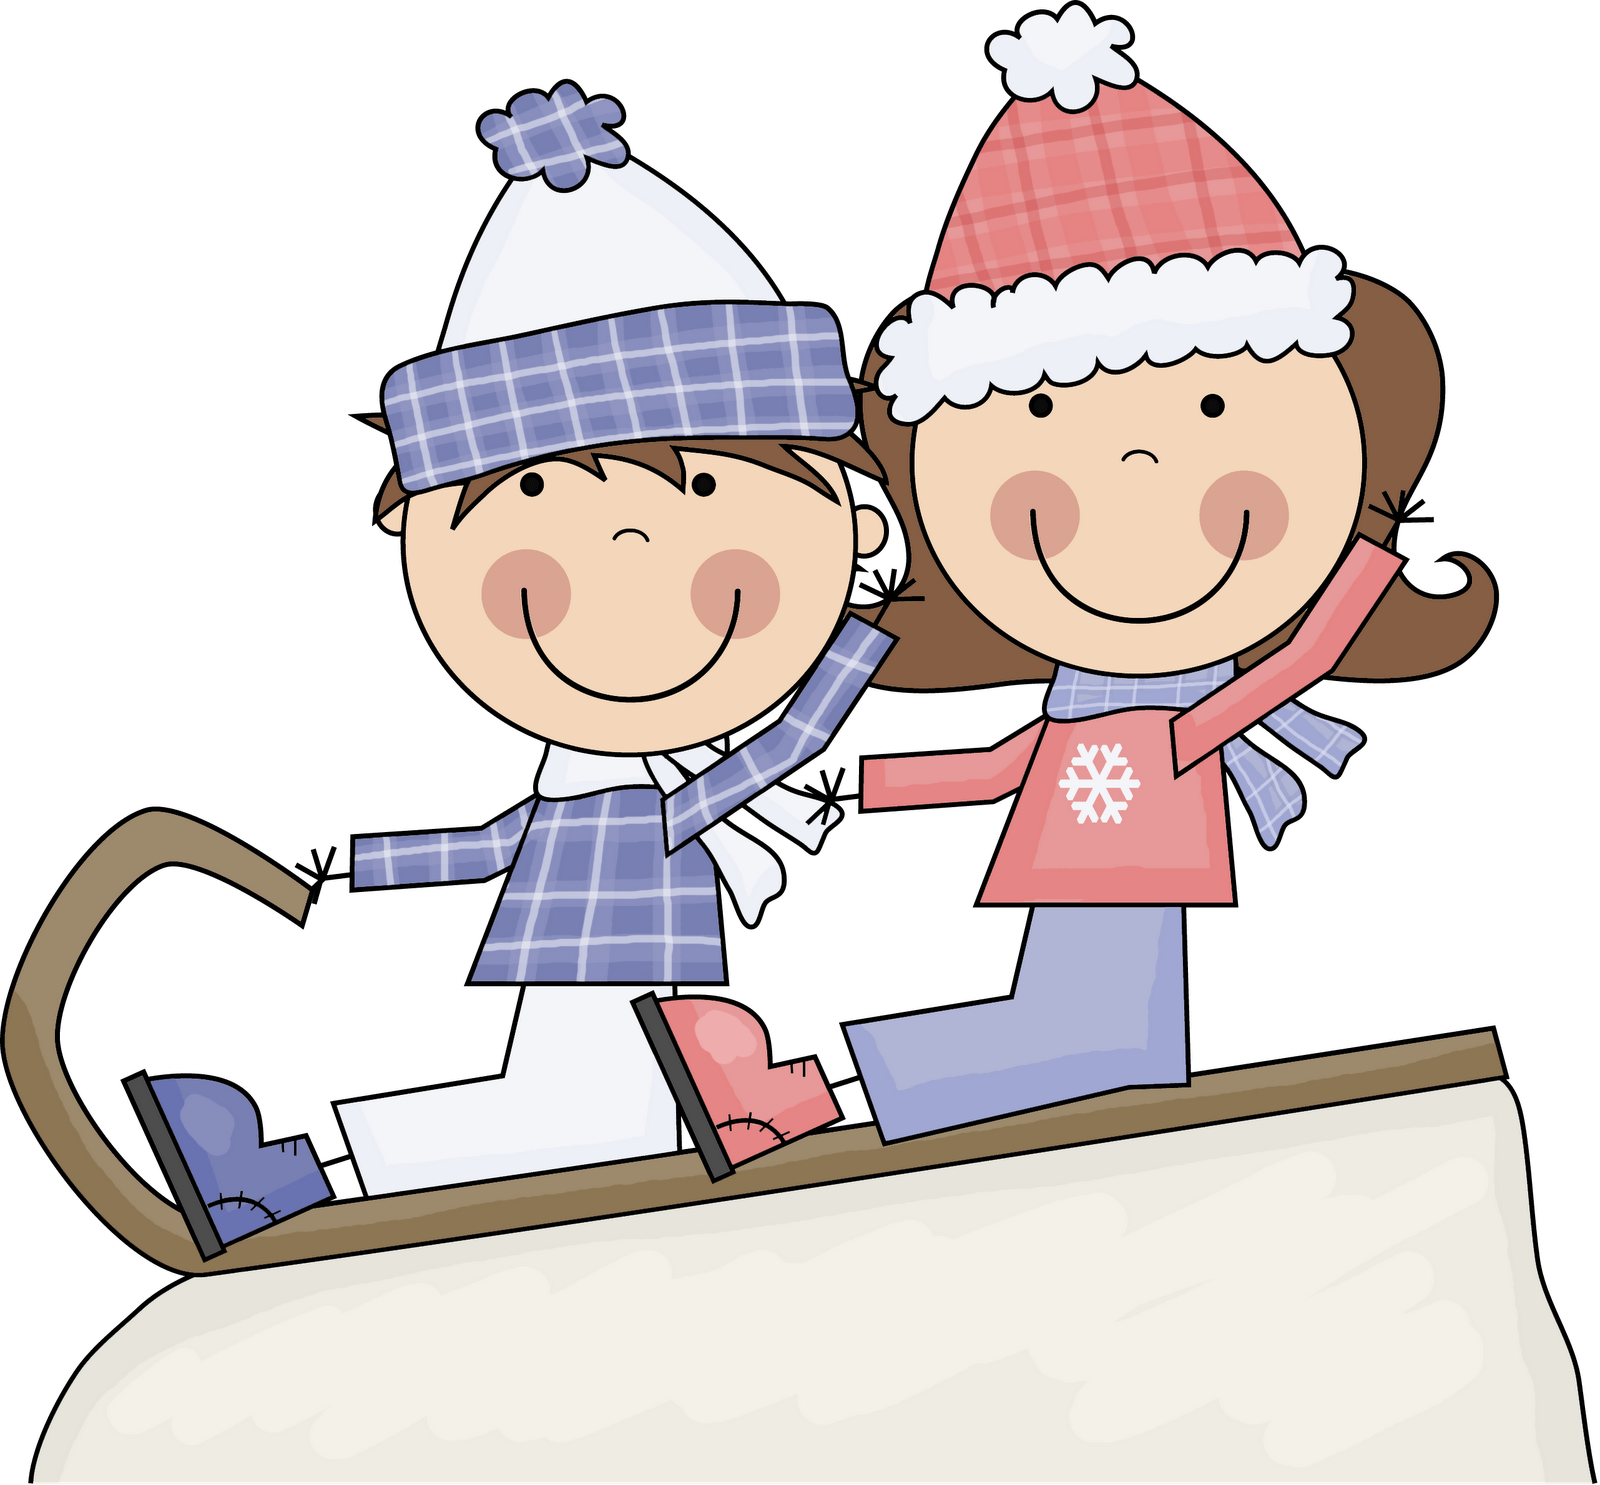 hight resolution of kids playing in snow clipart clip art